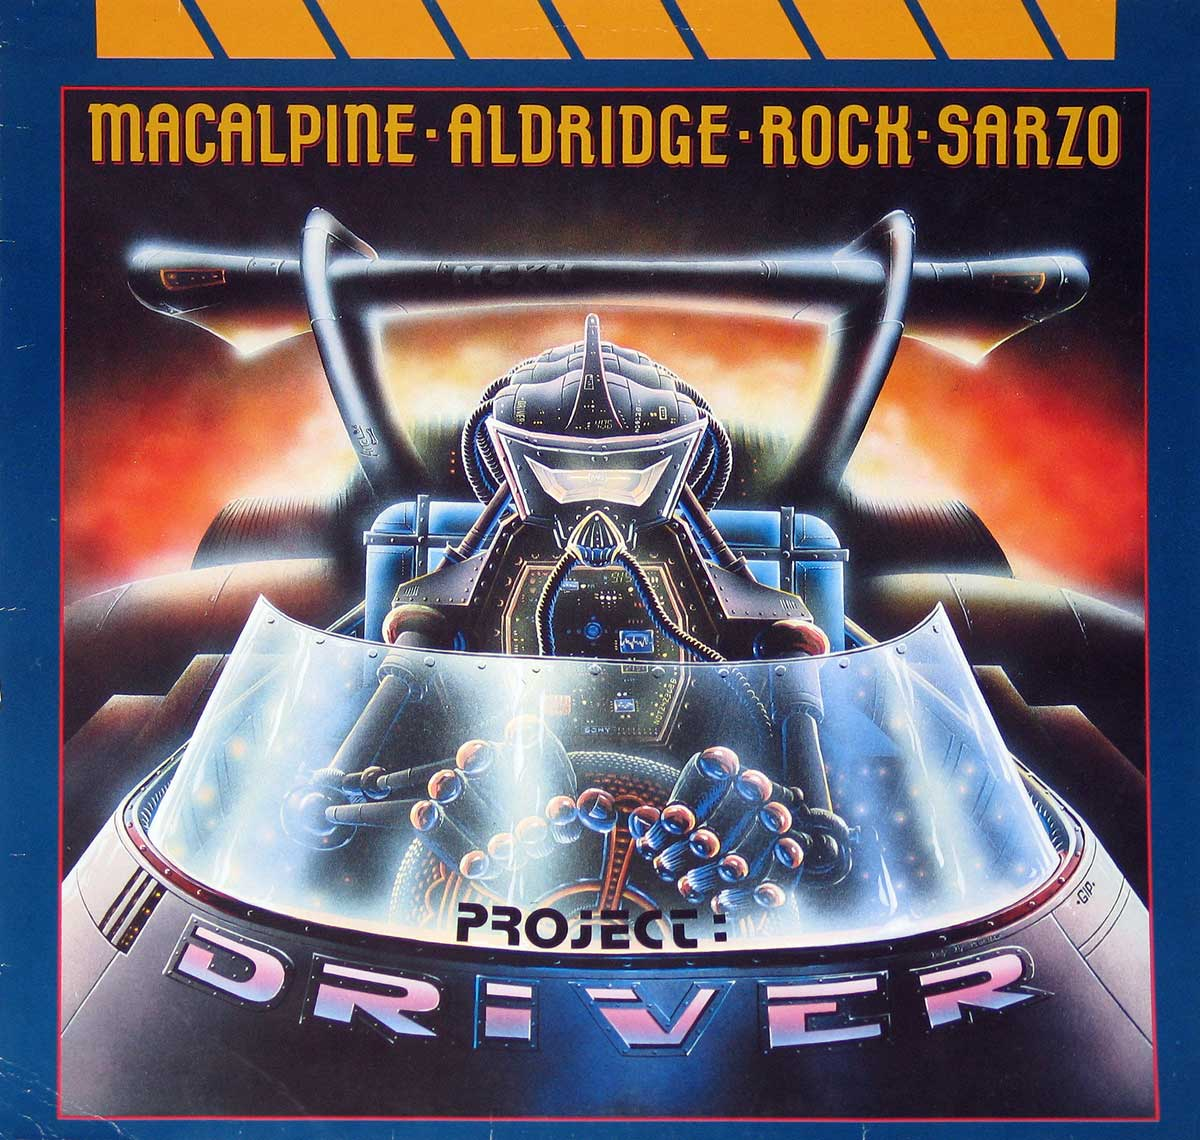 High Resolution Photo Album Front Cover of M.A.R.S - Project Driver https://vinyl-records.nl